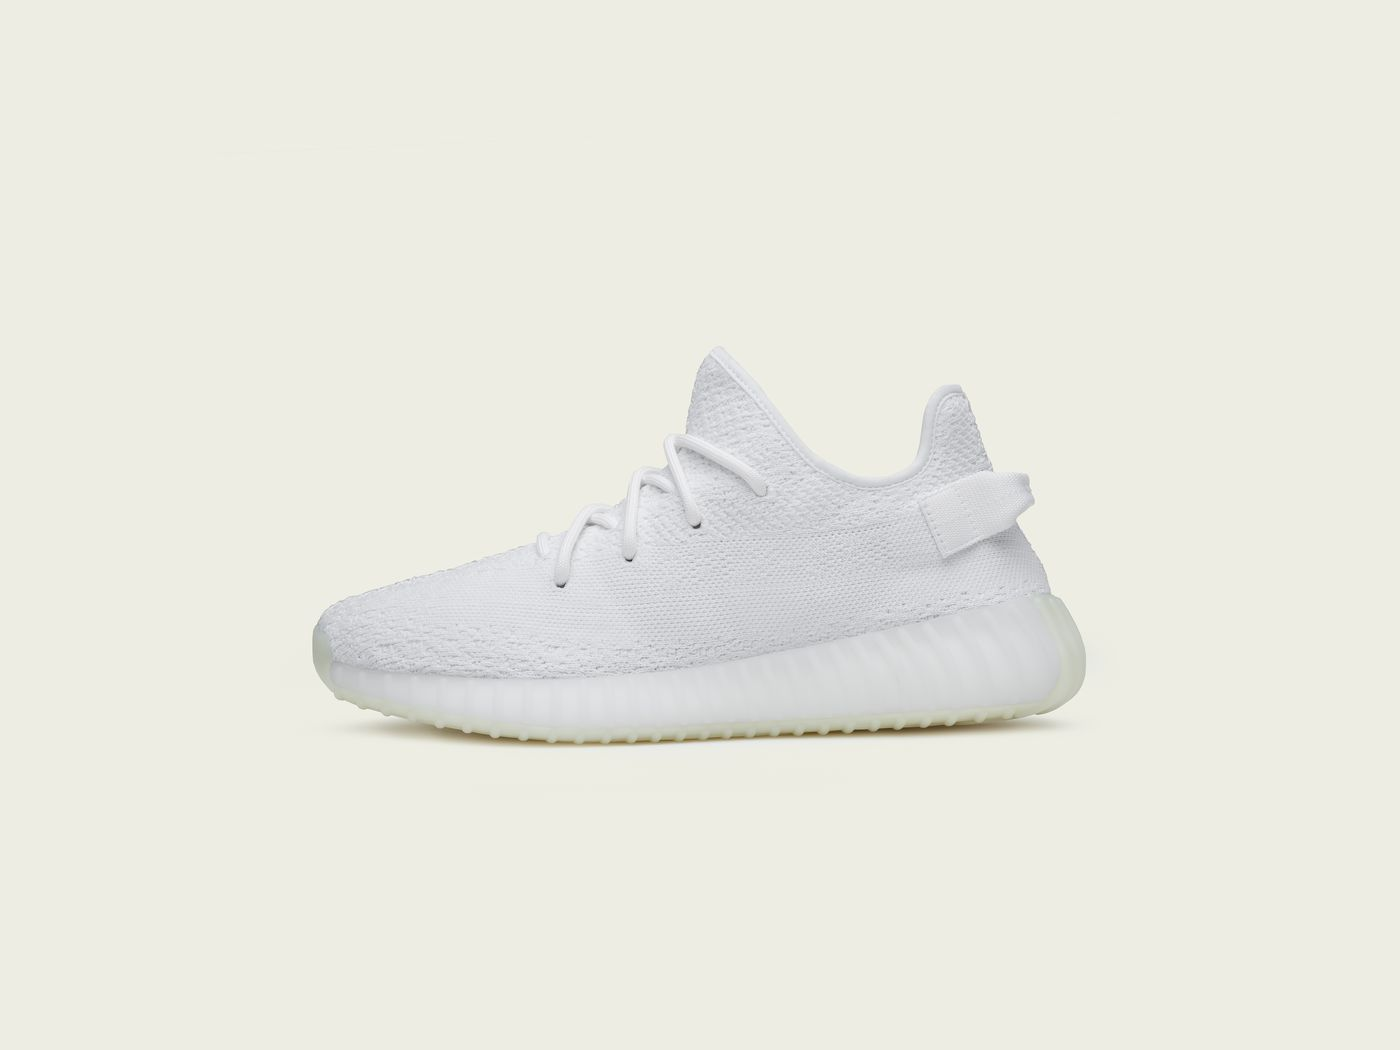 outlet store 742ab 7d01a How to Buy Yeezys, From People Who Actually Have - Racked